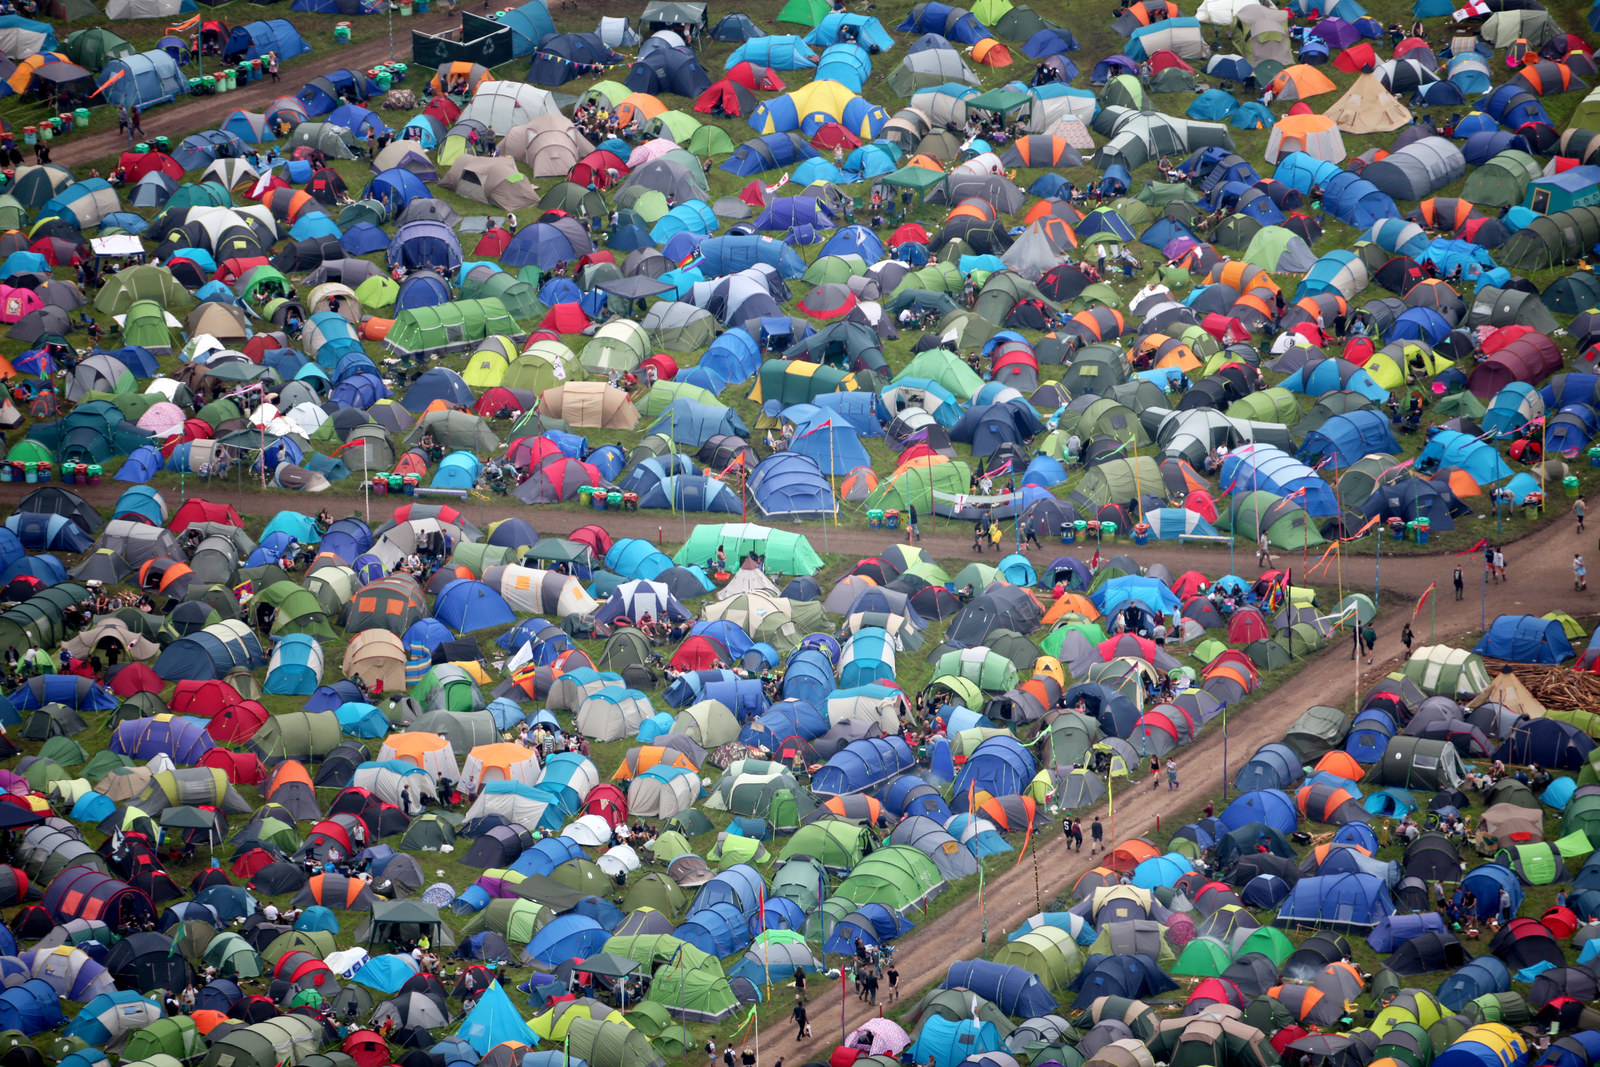 """Despite the weather and traffic, the festival is still growing, with organisers announcing on Twitter on Thursday: """"At 9am, there were 1,000 more people on site than same time in 2015."""""""